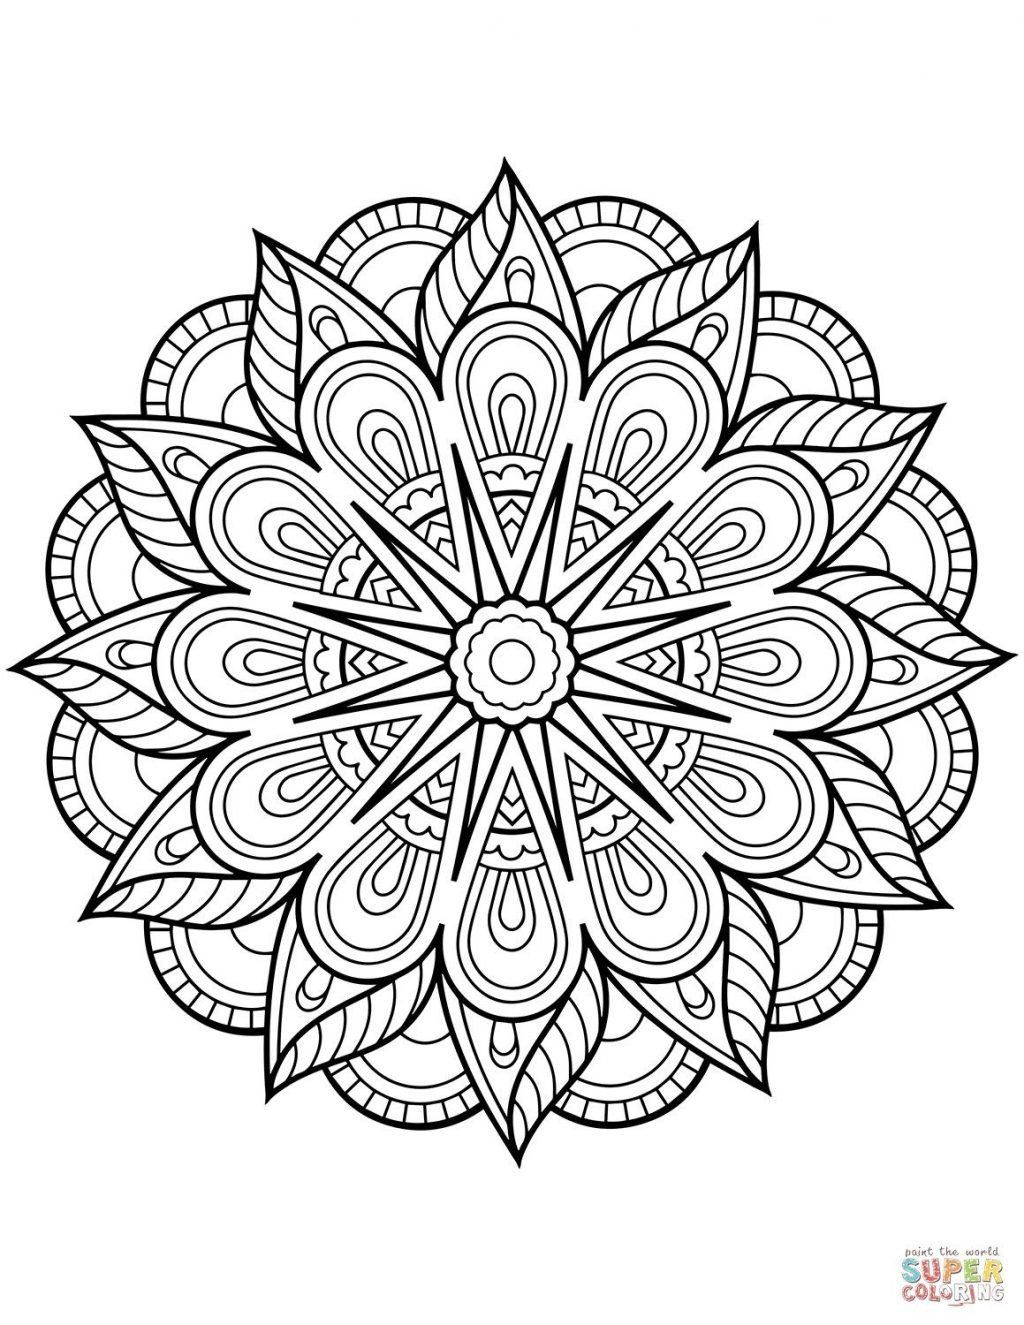 Large Mandala Coloring Pages Coloring Page Coloring Book Advanced Mandala Pagesntable Mandala Coloring Pages Printable Coloring Book Mandala Coloring